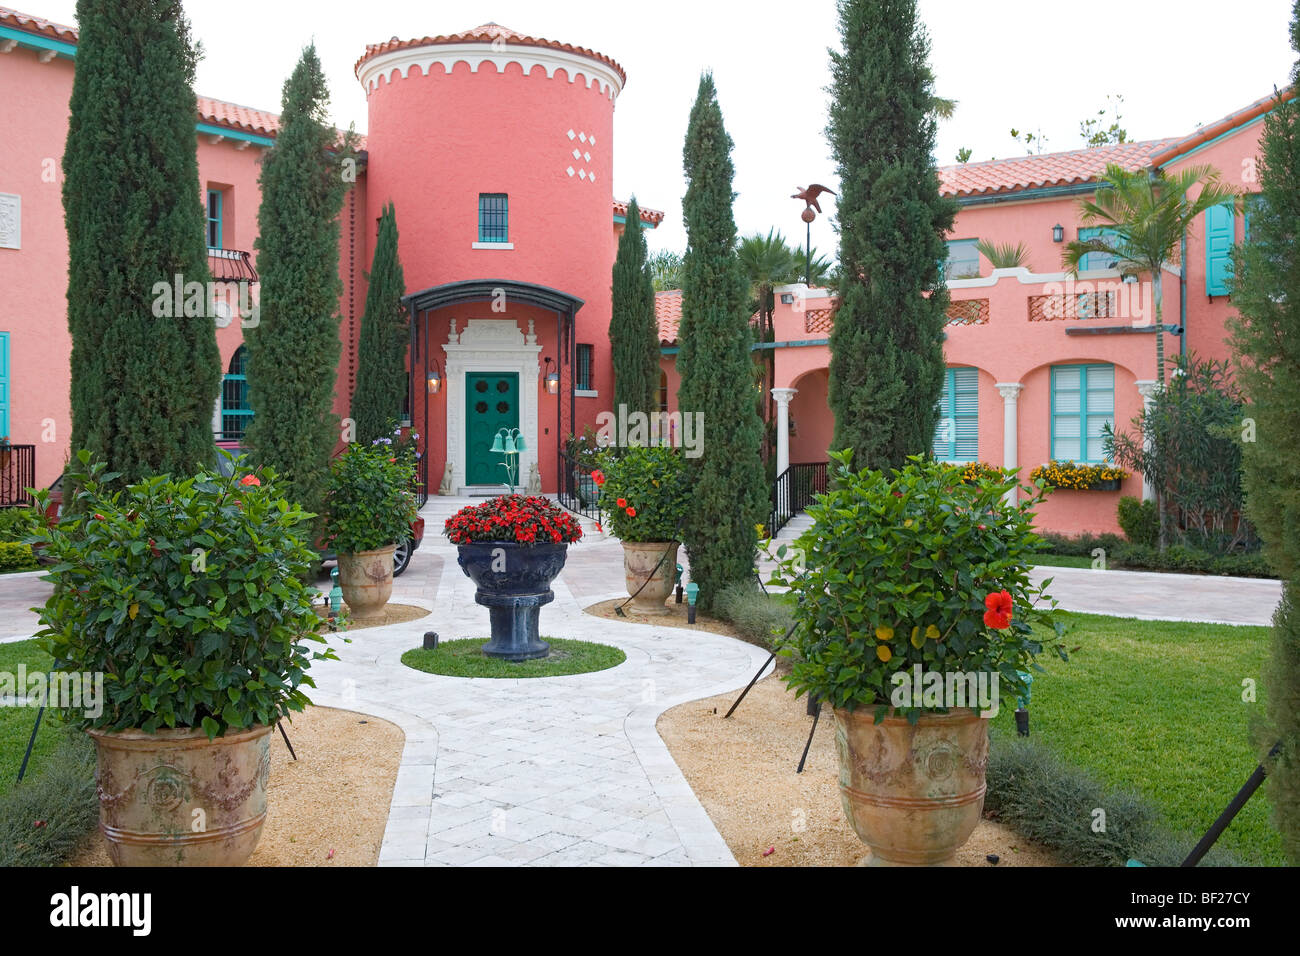 Luxurious villa with front garden, Fort Lauderdale, Florida, USA - Stock Image